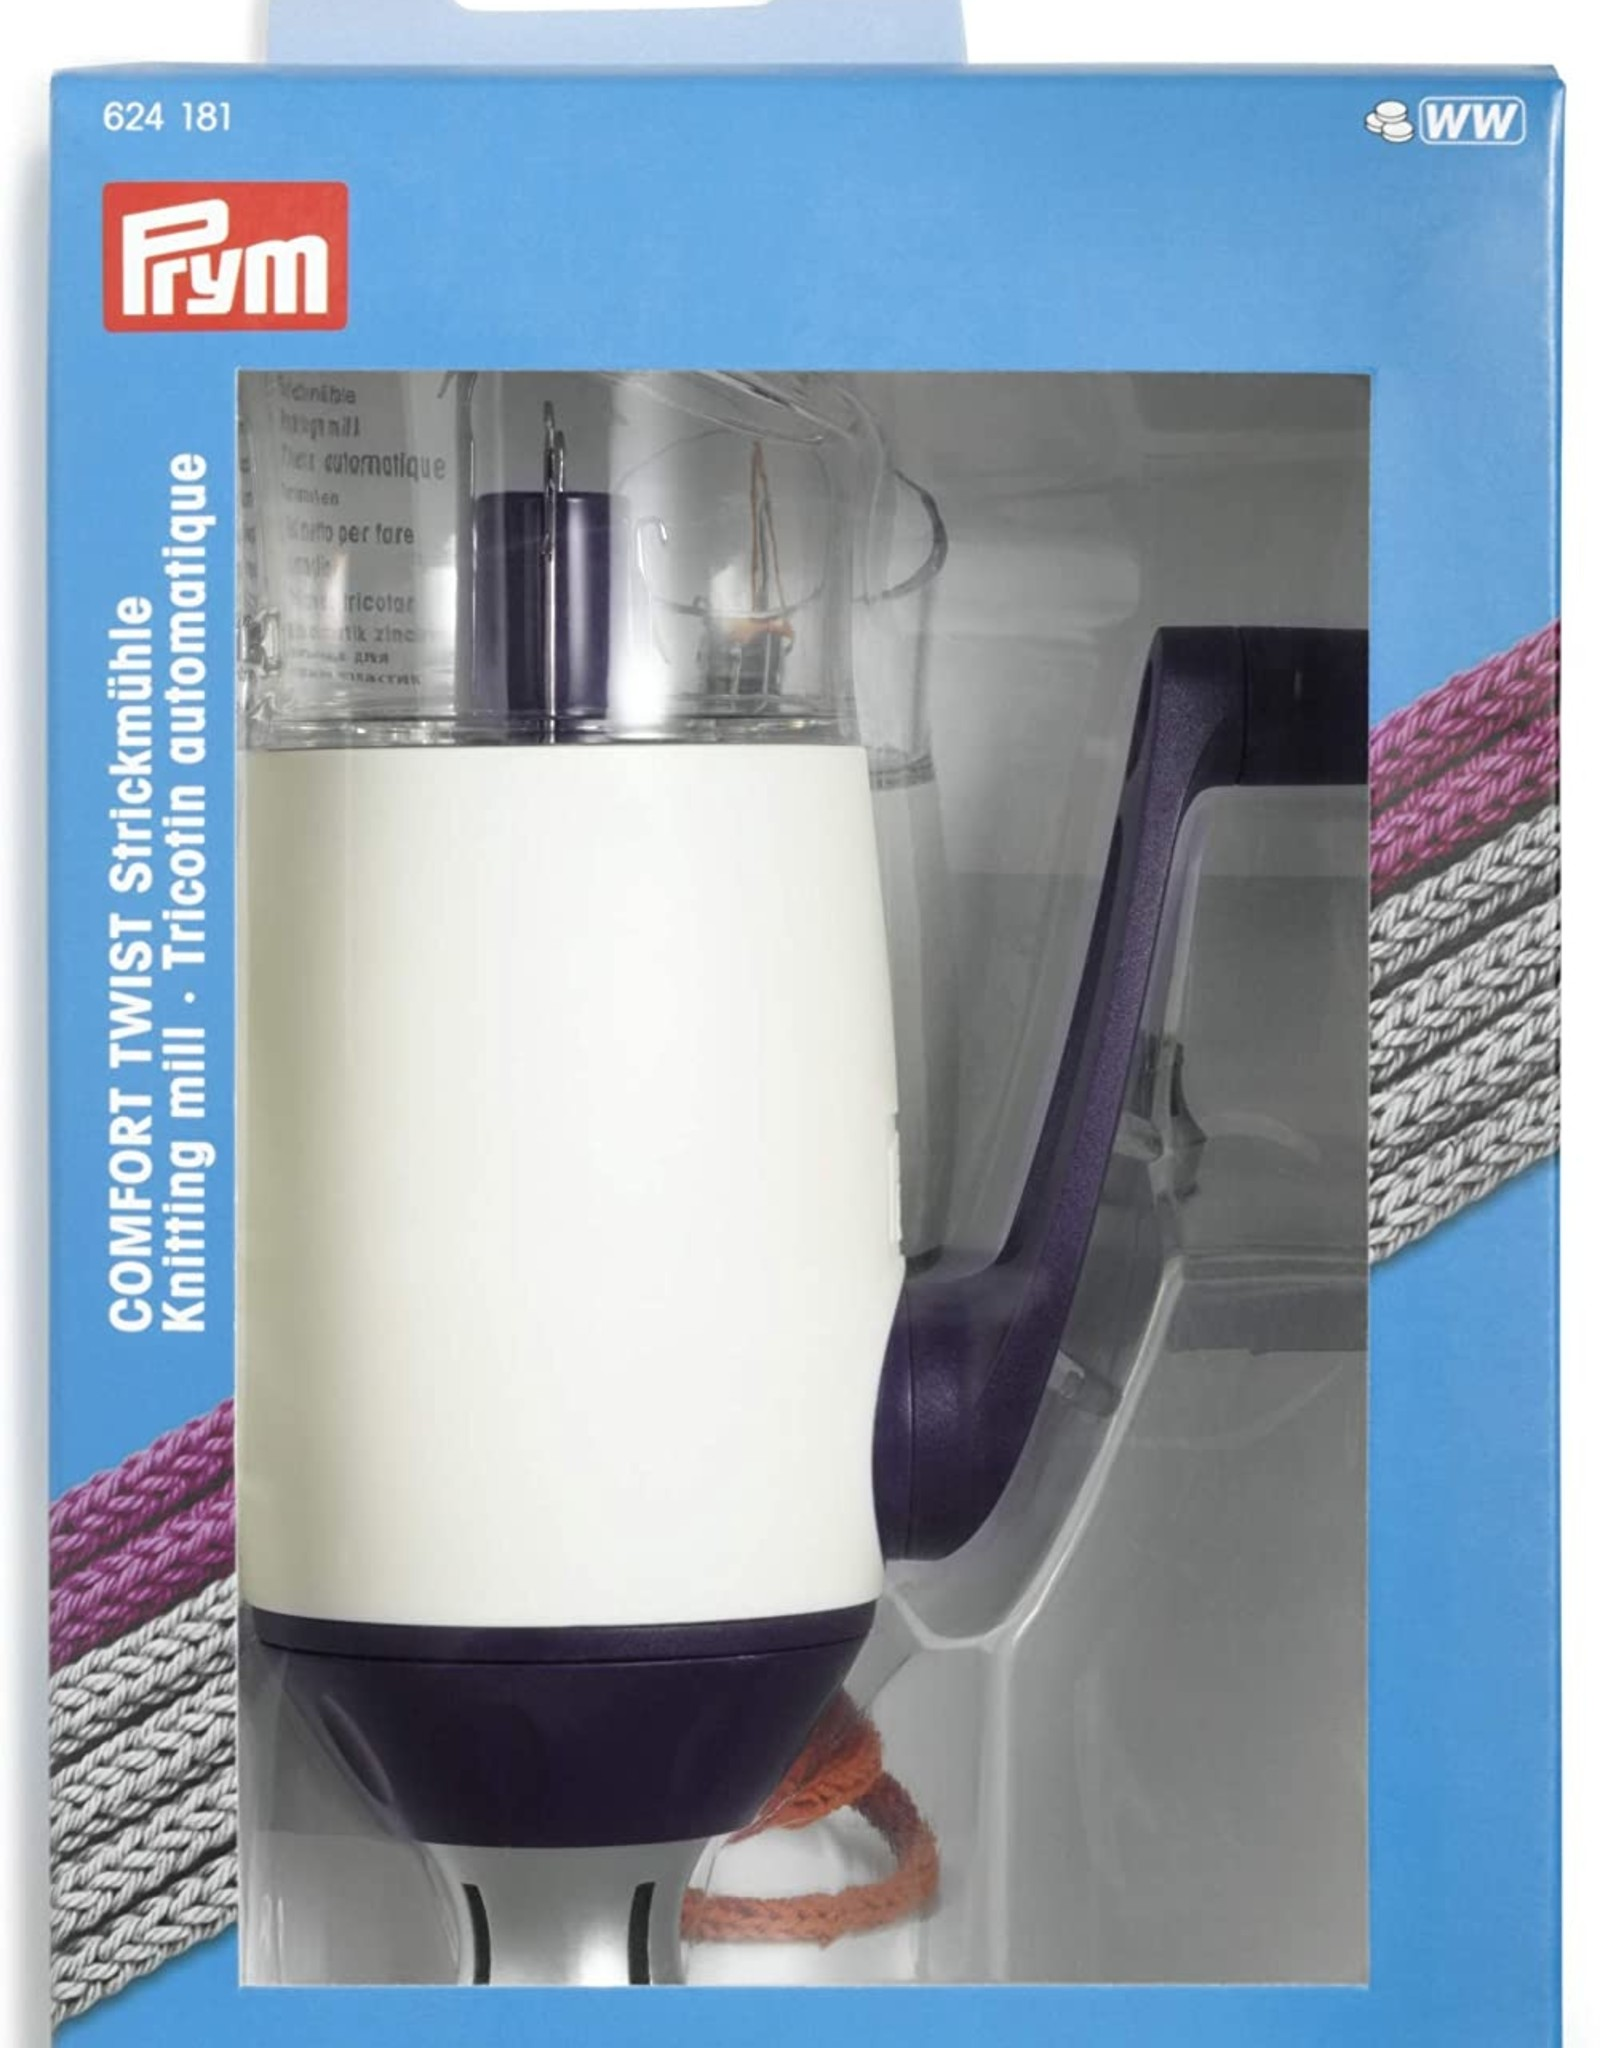 Bryson Prym Comfort Twist Knitting Mill